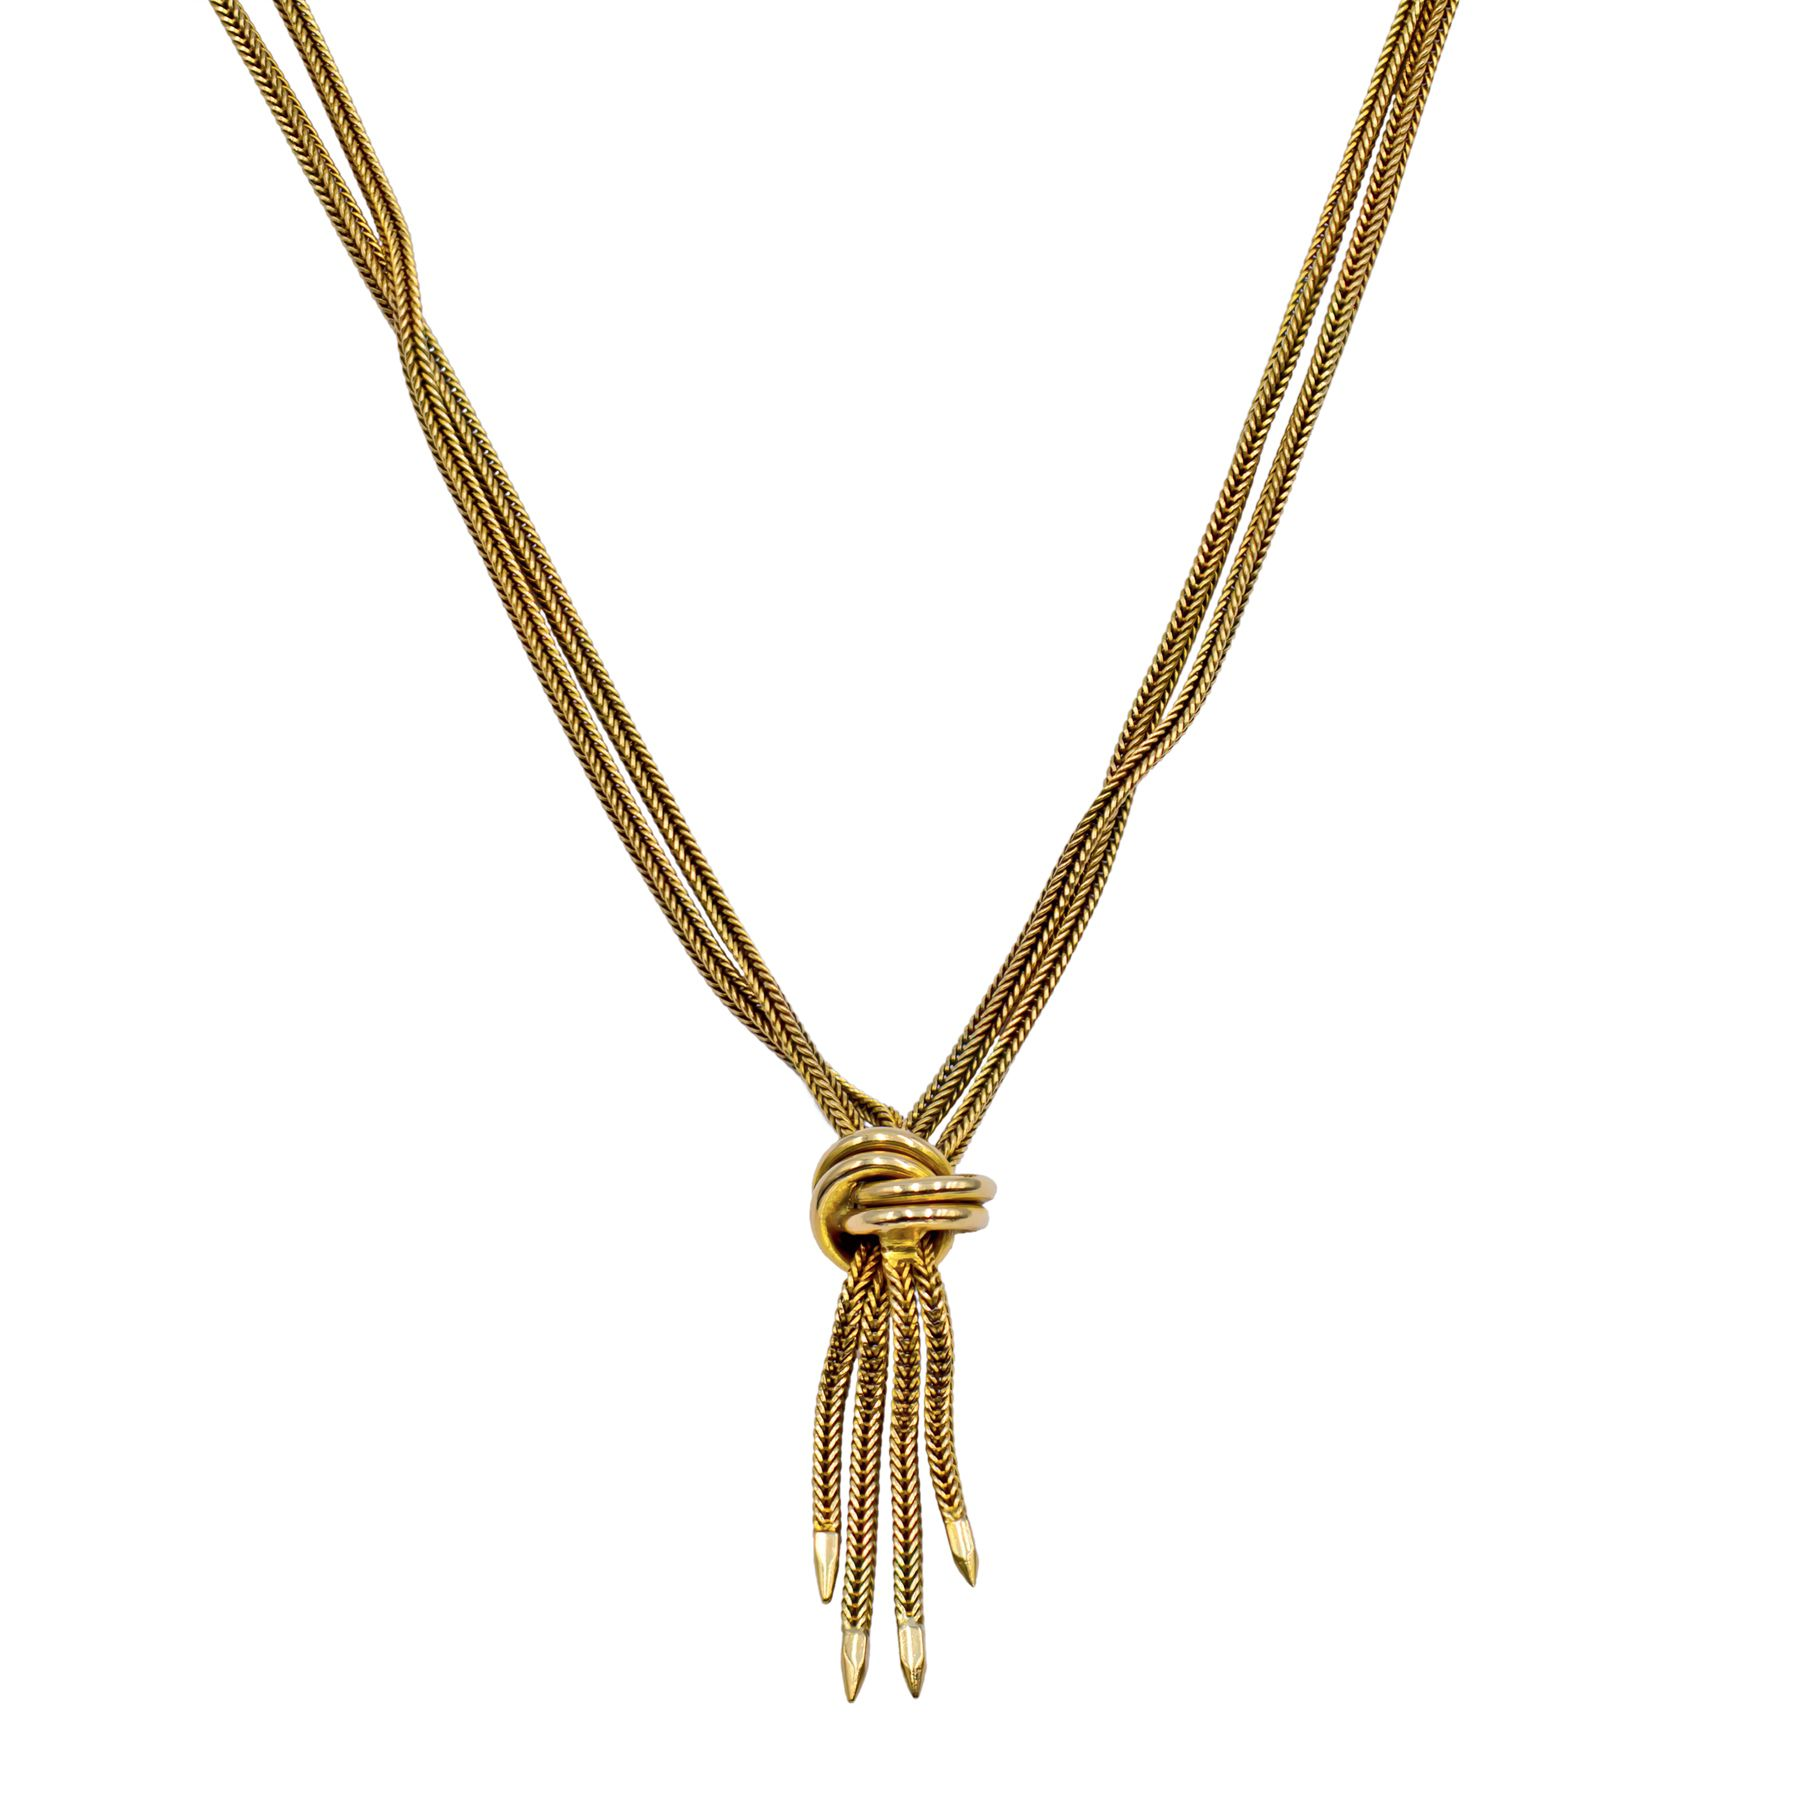 Pre-owned 9ct Yellow Gold Fancy Necklace